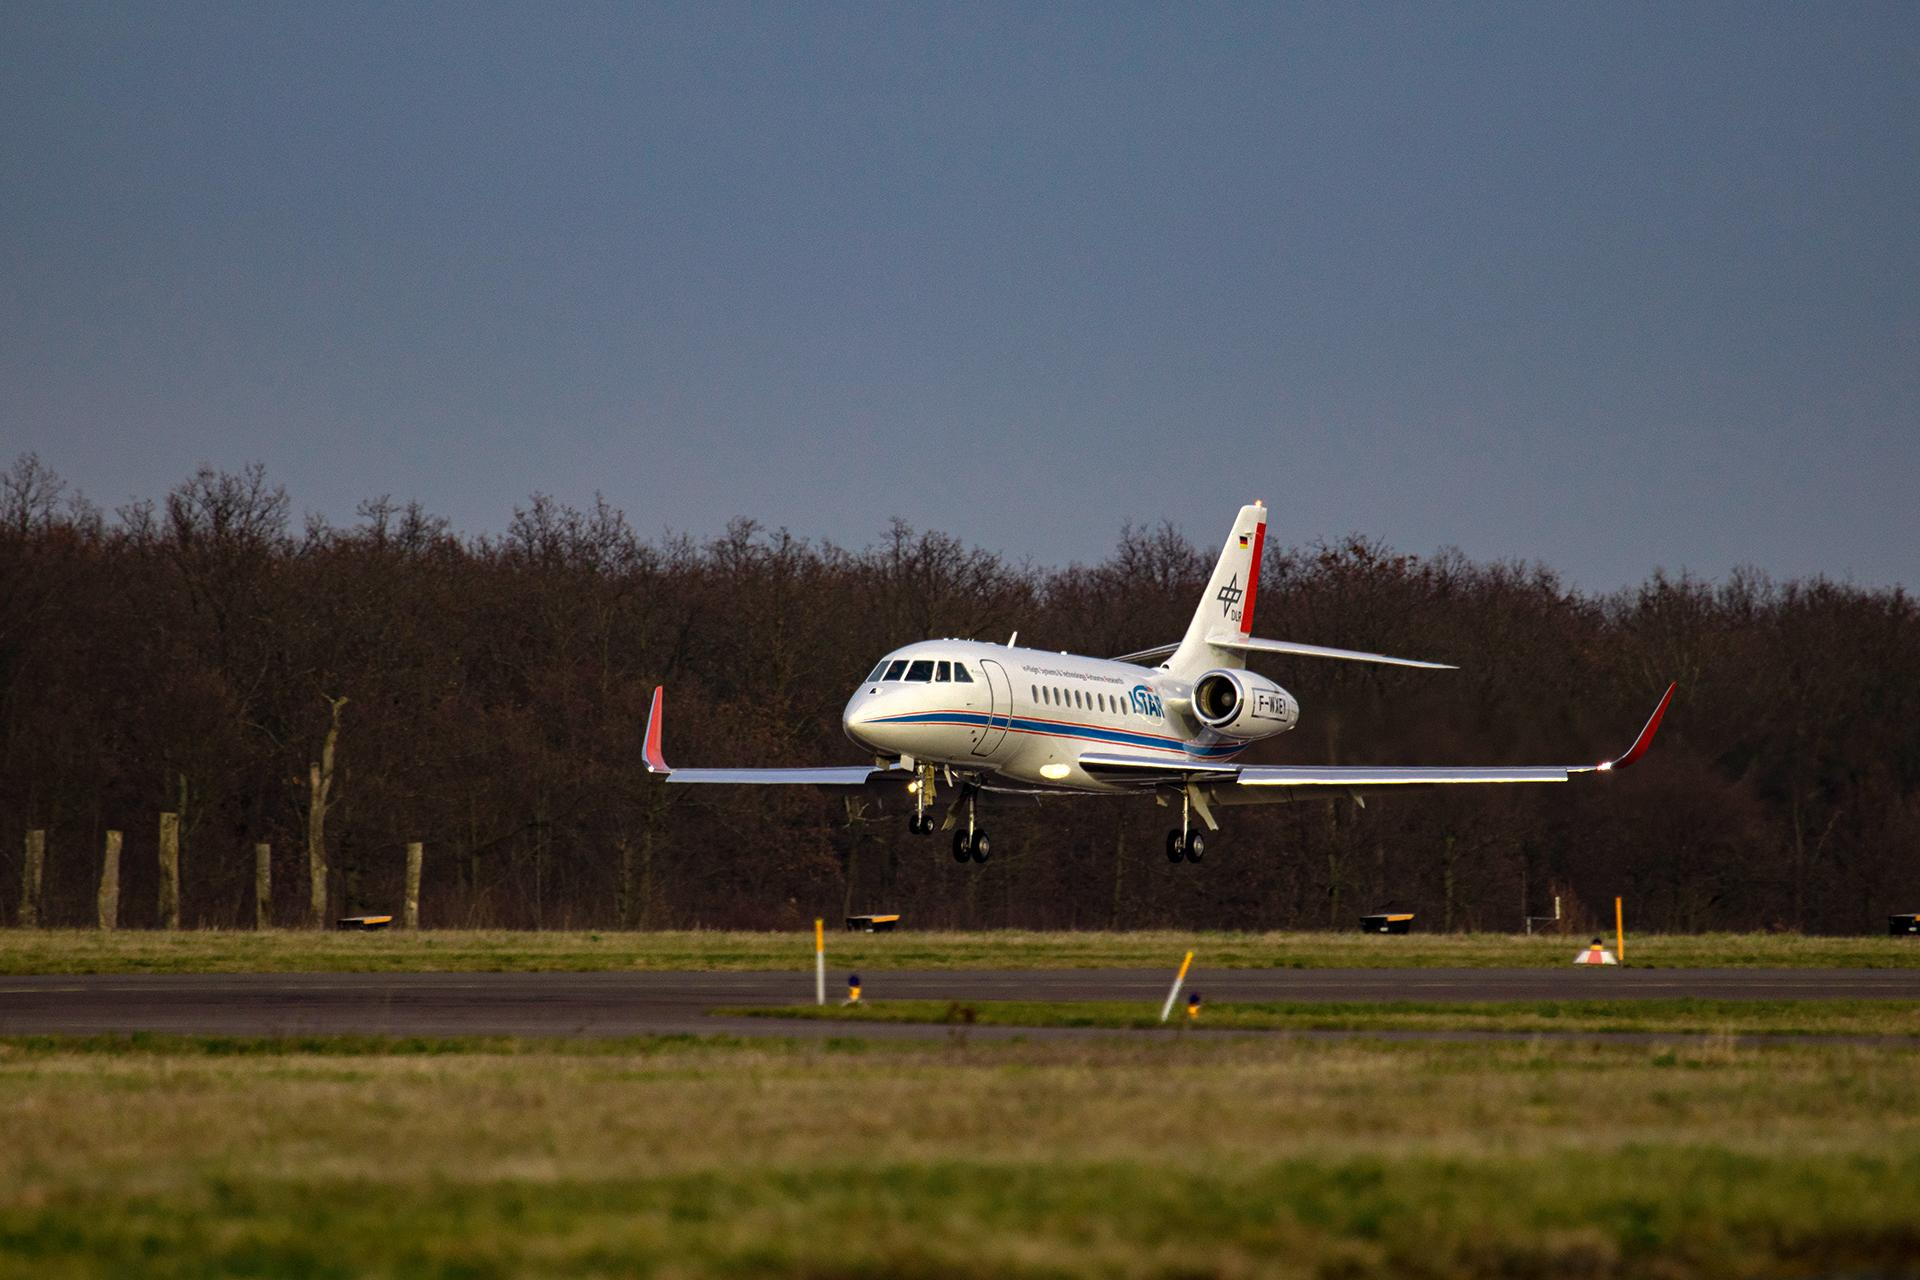 ISTAR landing in Braunschweig for the first time